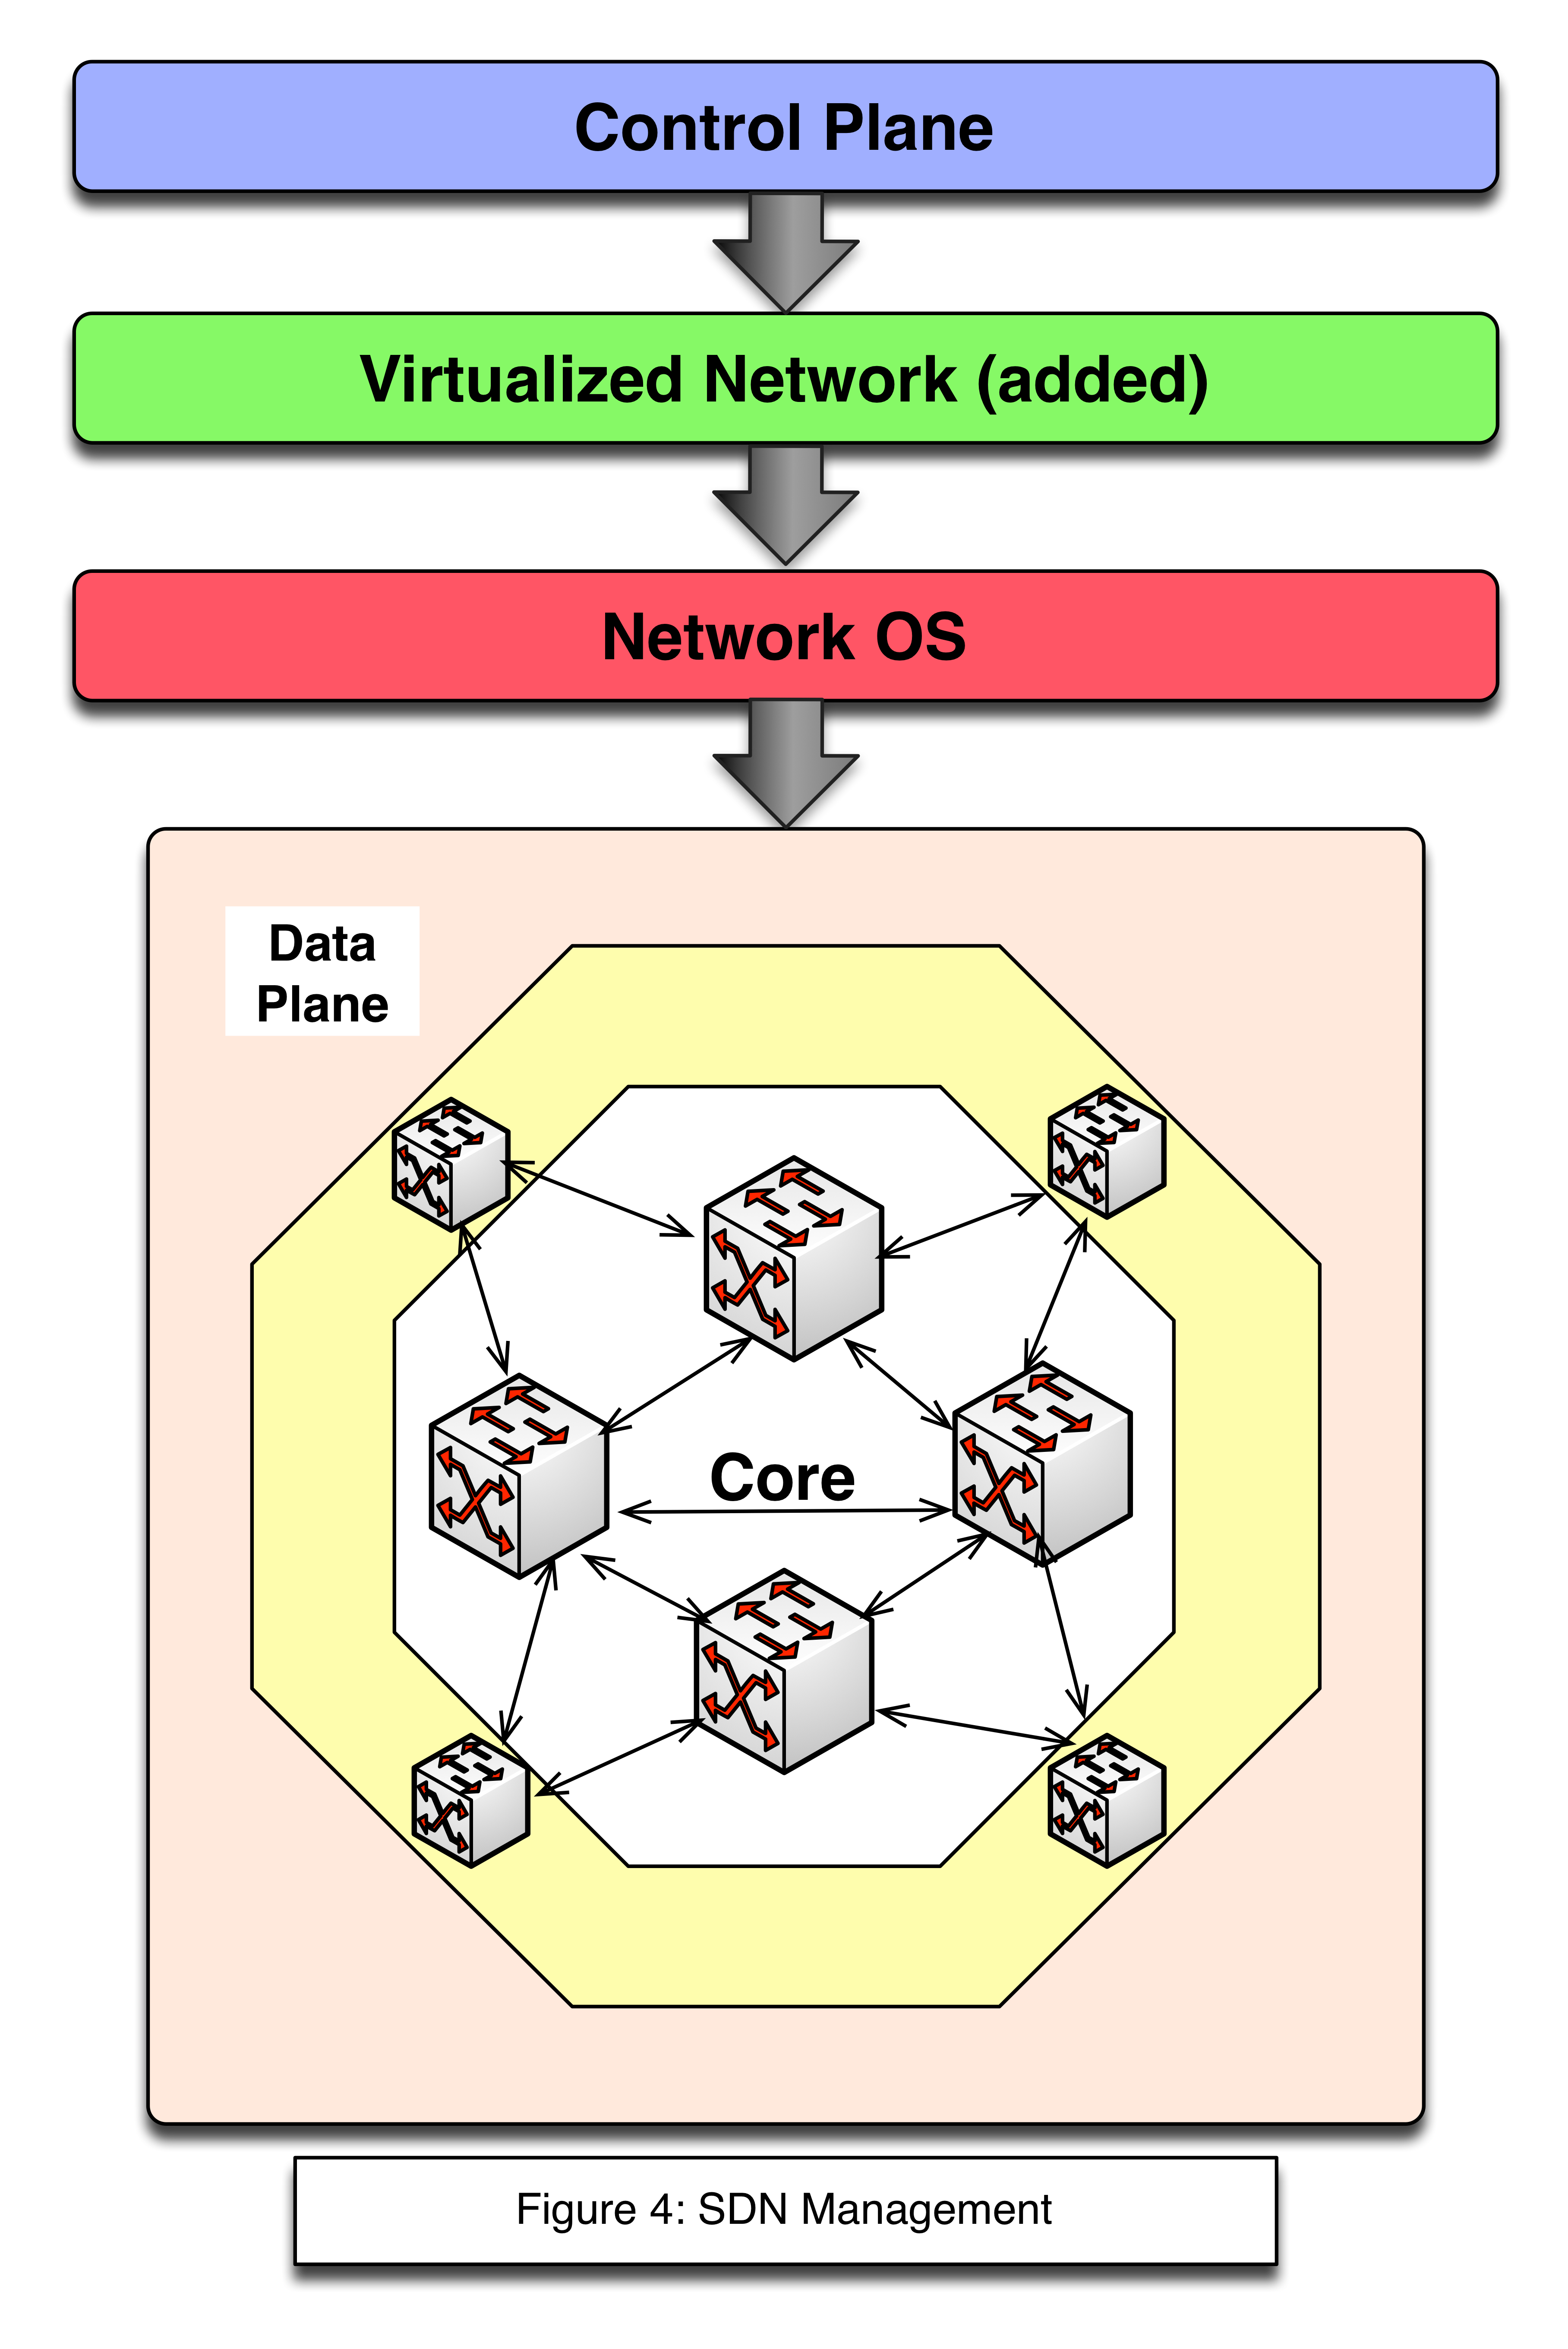 SDN with Virtualized Network Layer